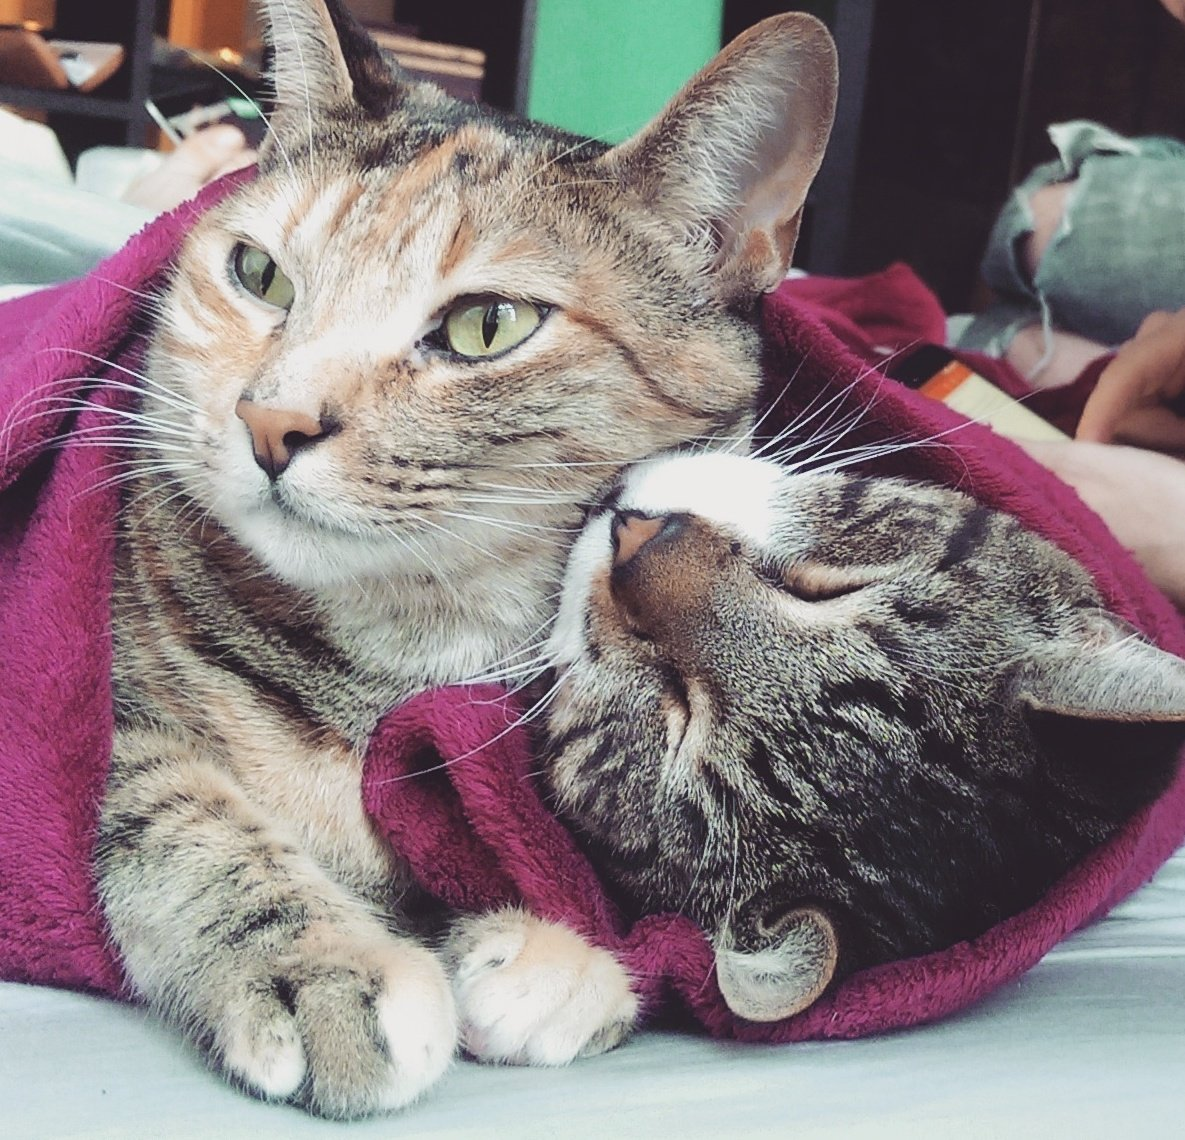 My cats (Lumen and Waffle) cuddled up in a blanket